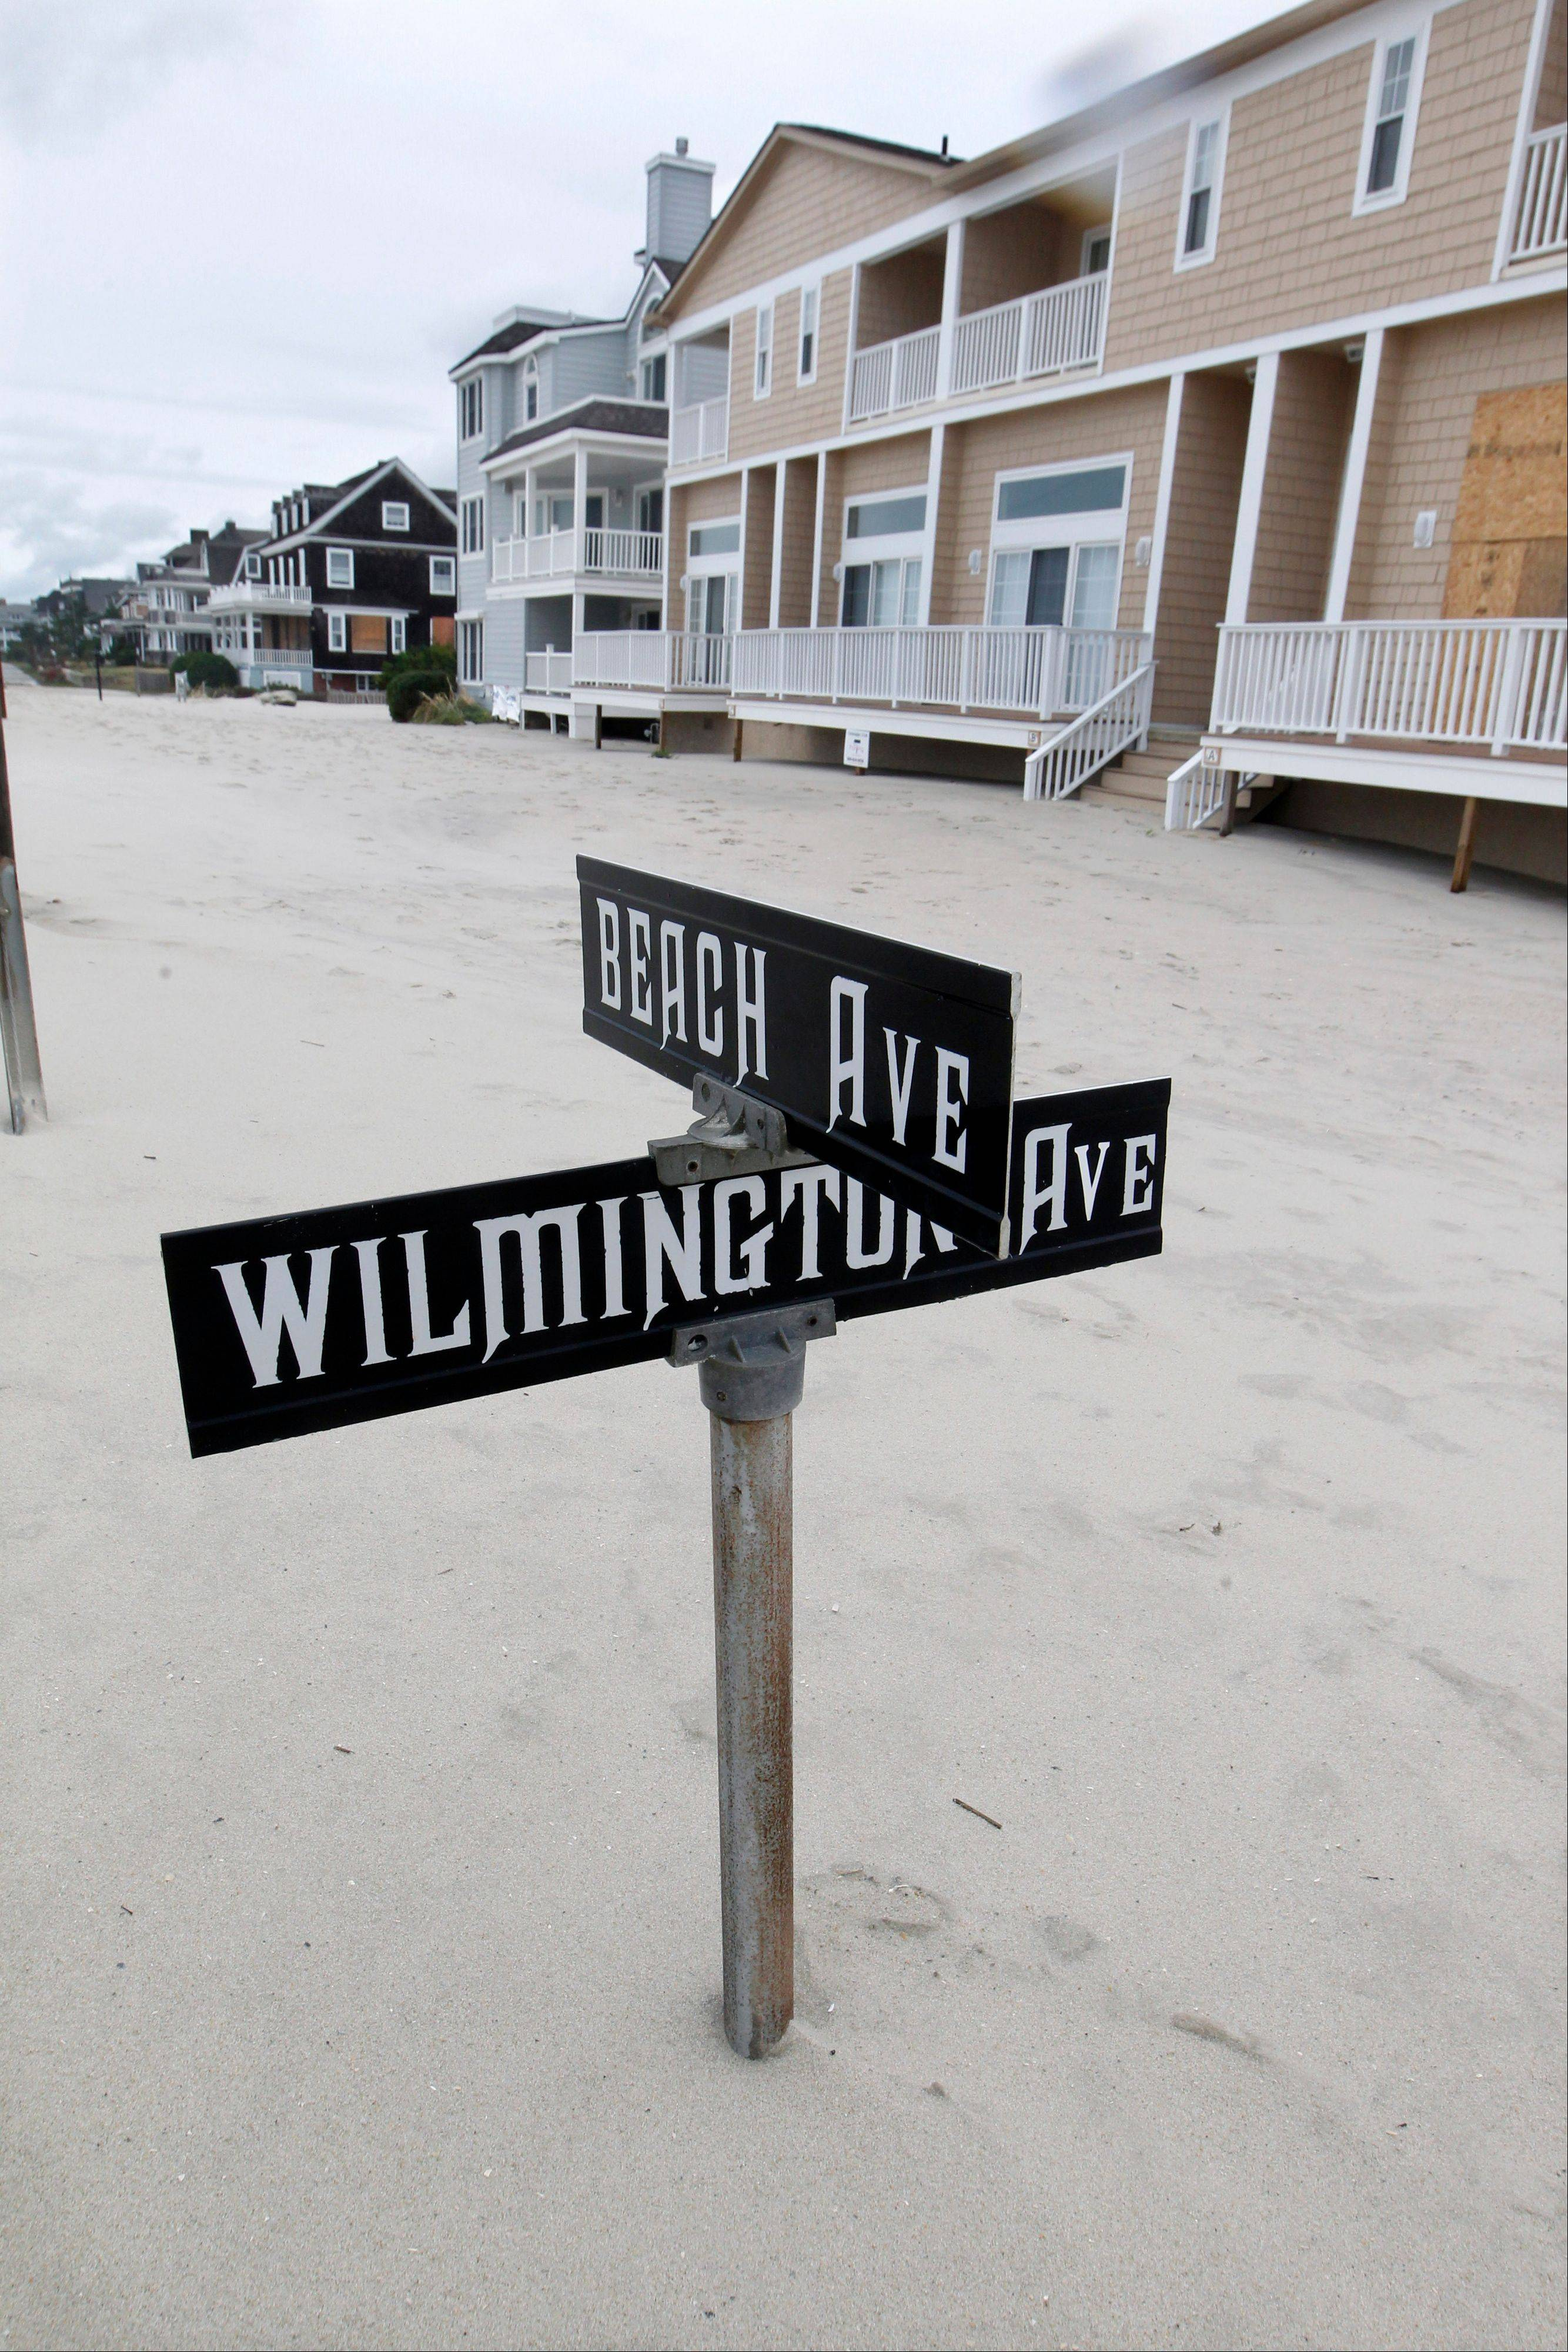 A street sign is partially buried in sand Tuesday morning, Oct. 30, 2012, in Cape May, N.J., after a storm surge from Sandy pushed the Atlantic Ocean over the beach and across Beach Avenue.